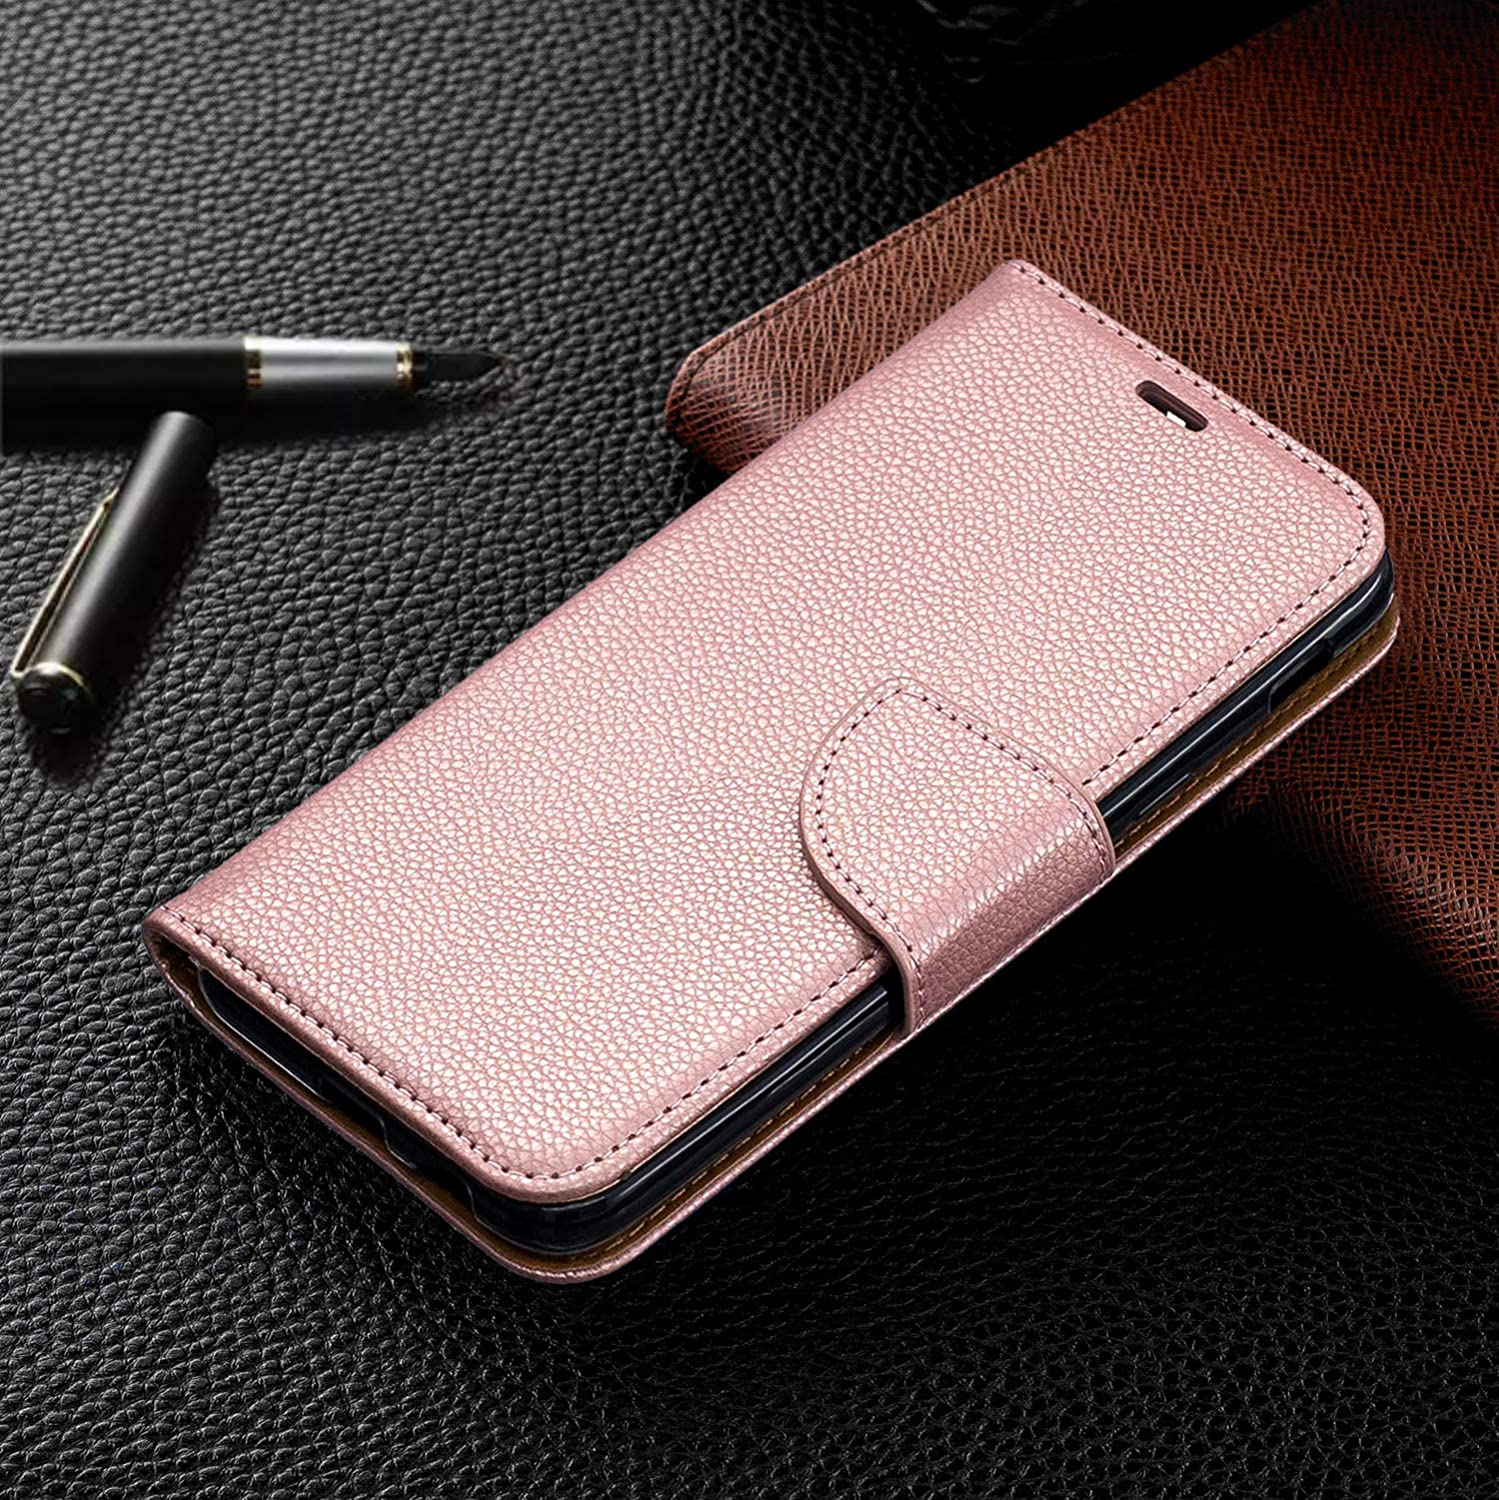 Luxury PU Leather Wallet Case for Samsung Galaxy A6 2018,Flip Folio Case for Samsung Galaxy A6 2018,Moiky Rose Gold Multifunctional Magnetic Kickstand Case With Wrist Strap and ID/&Credit Cards Slots